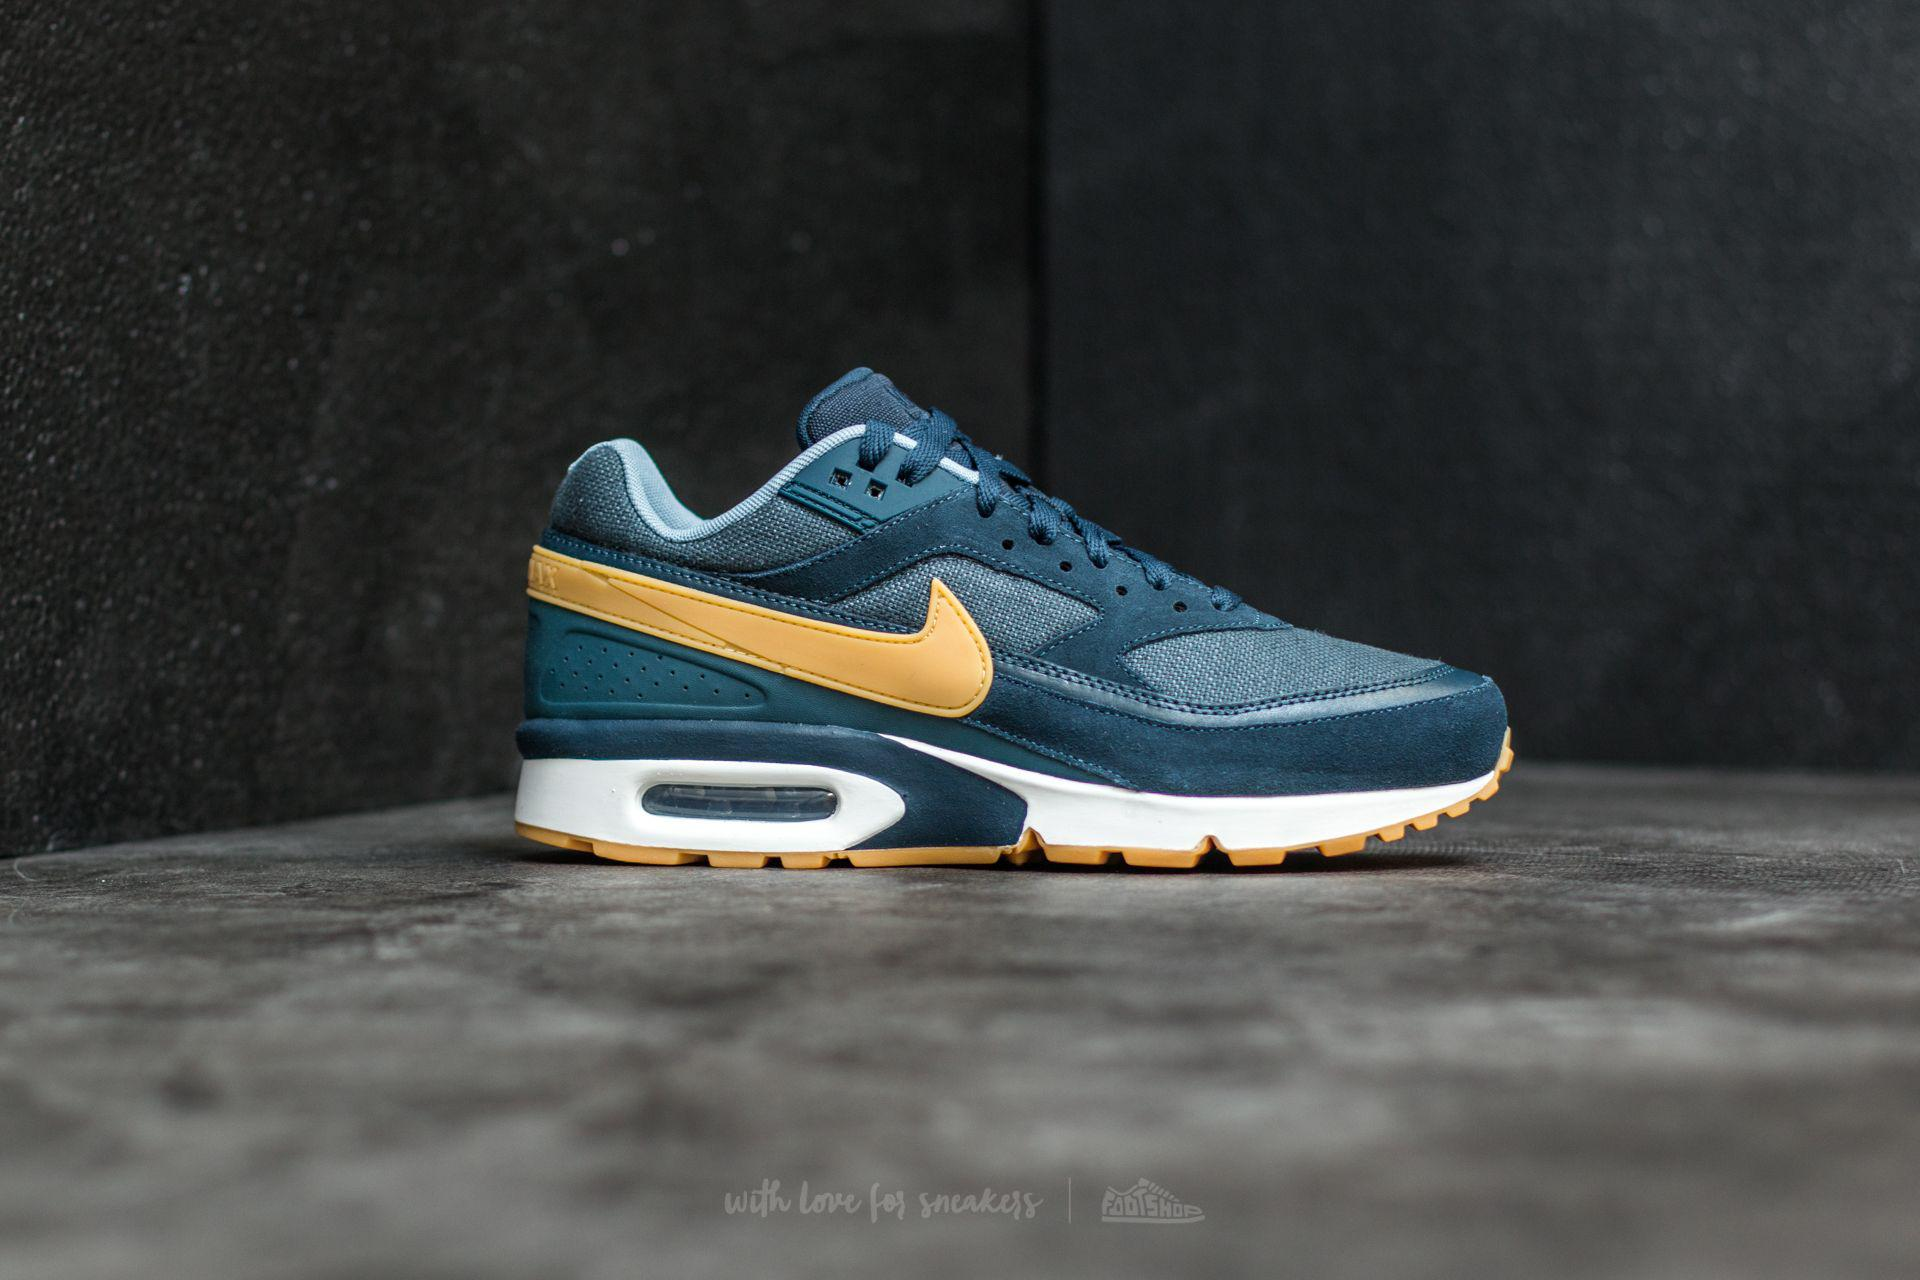 8eeb455fda ... greece lyst nike air max bw premium armory navy gum yellow in blue for  men 9401d